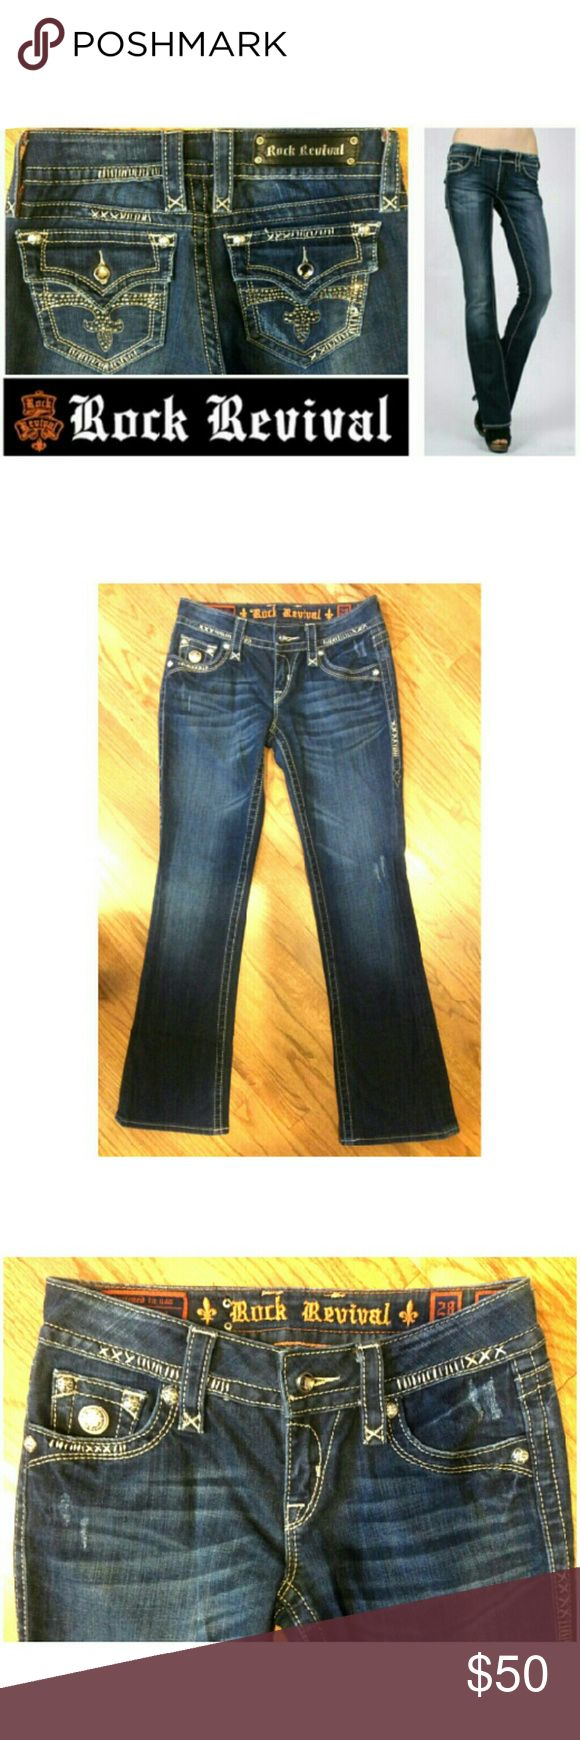 """🔥73%off Celine Boot Rock Revival jewel Cross jean These gorgeous Rock Revival Celine Boot jeans are perfect for dressing up any casual occasion! Medium royal blue denim wash in cotton blend with 2% spandex for stretch fit. Traditional 5 pocket style, stitching elegantly decorates throughout, Rock Revival logo stud on 5th pocket and crystal crosses on buttoned back pockets. Rock Revival leather tag logo on back. Size 28, 31"""" inseam. In EXCELLENT CONDITION. Dress up or down with sweaters and…"""